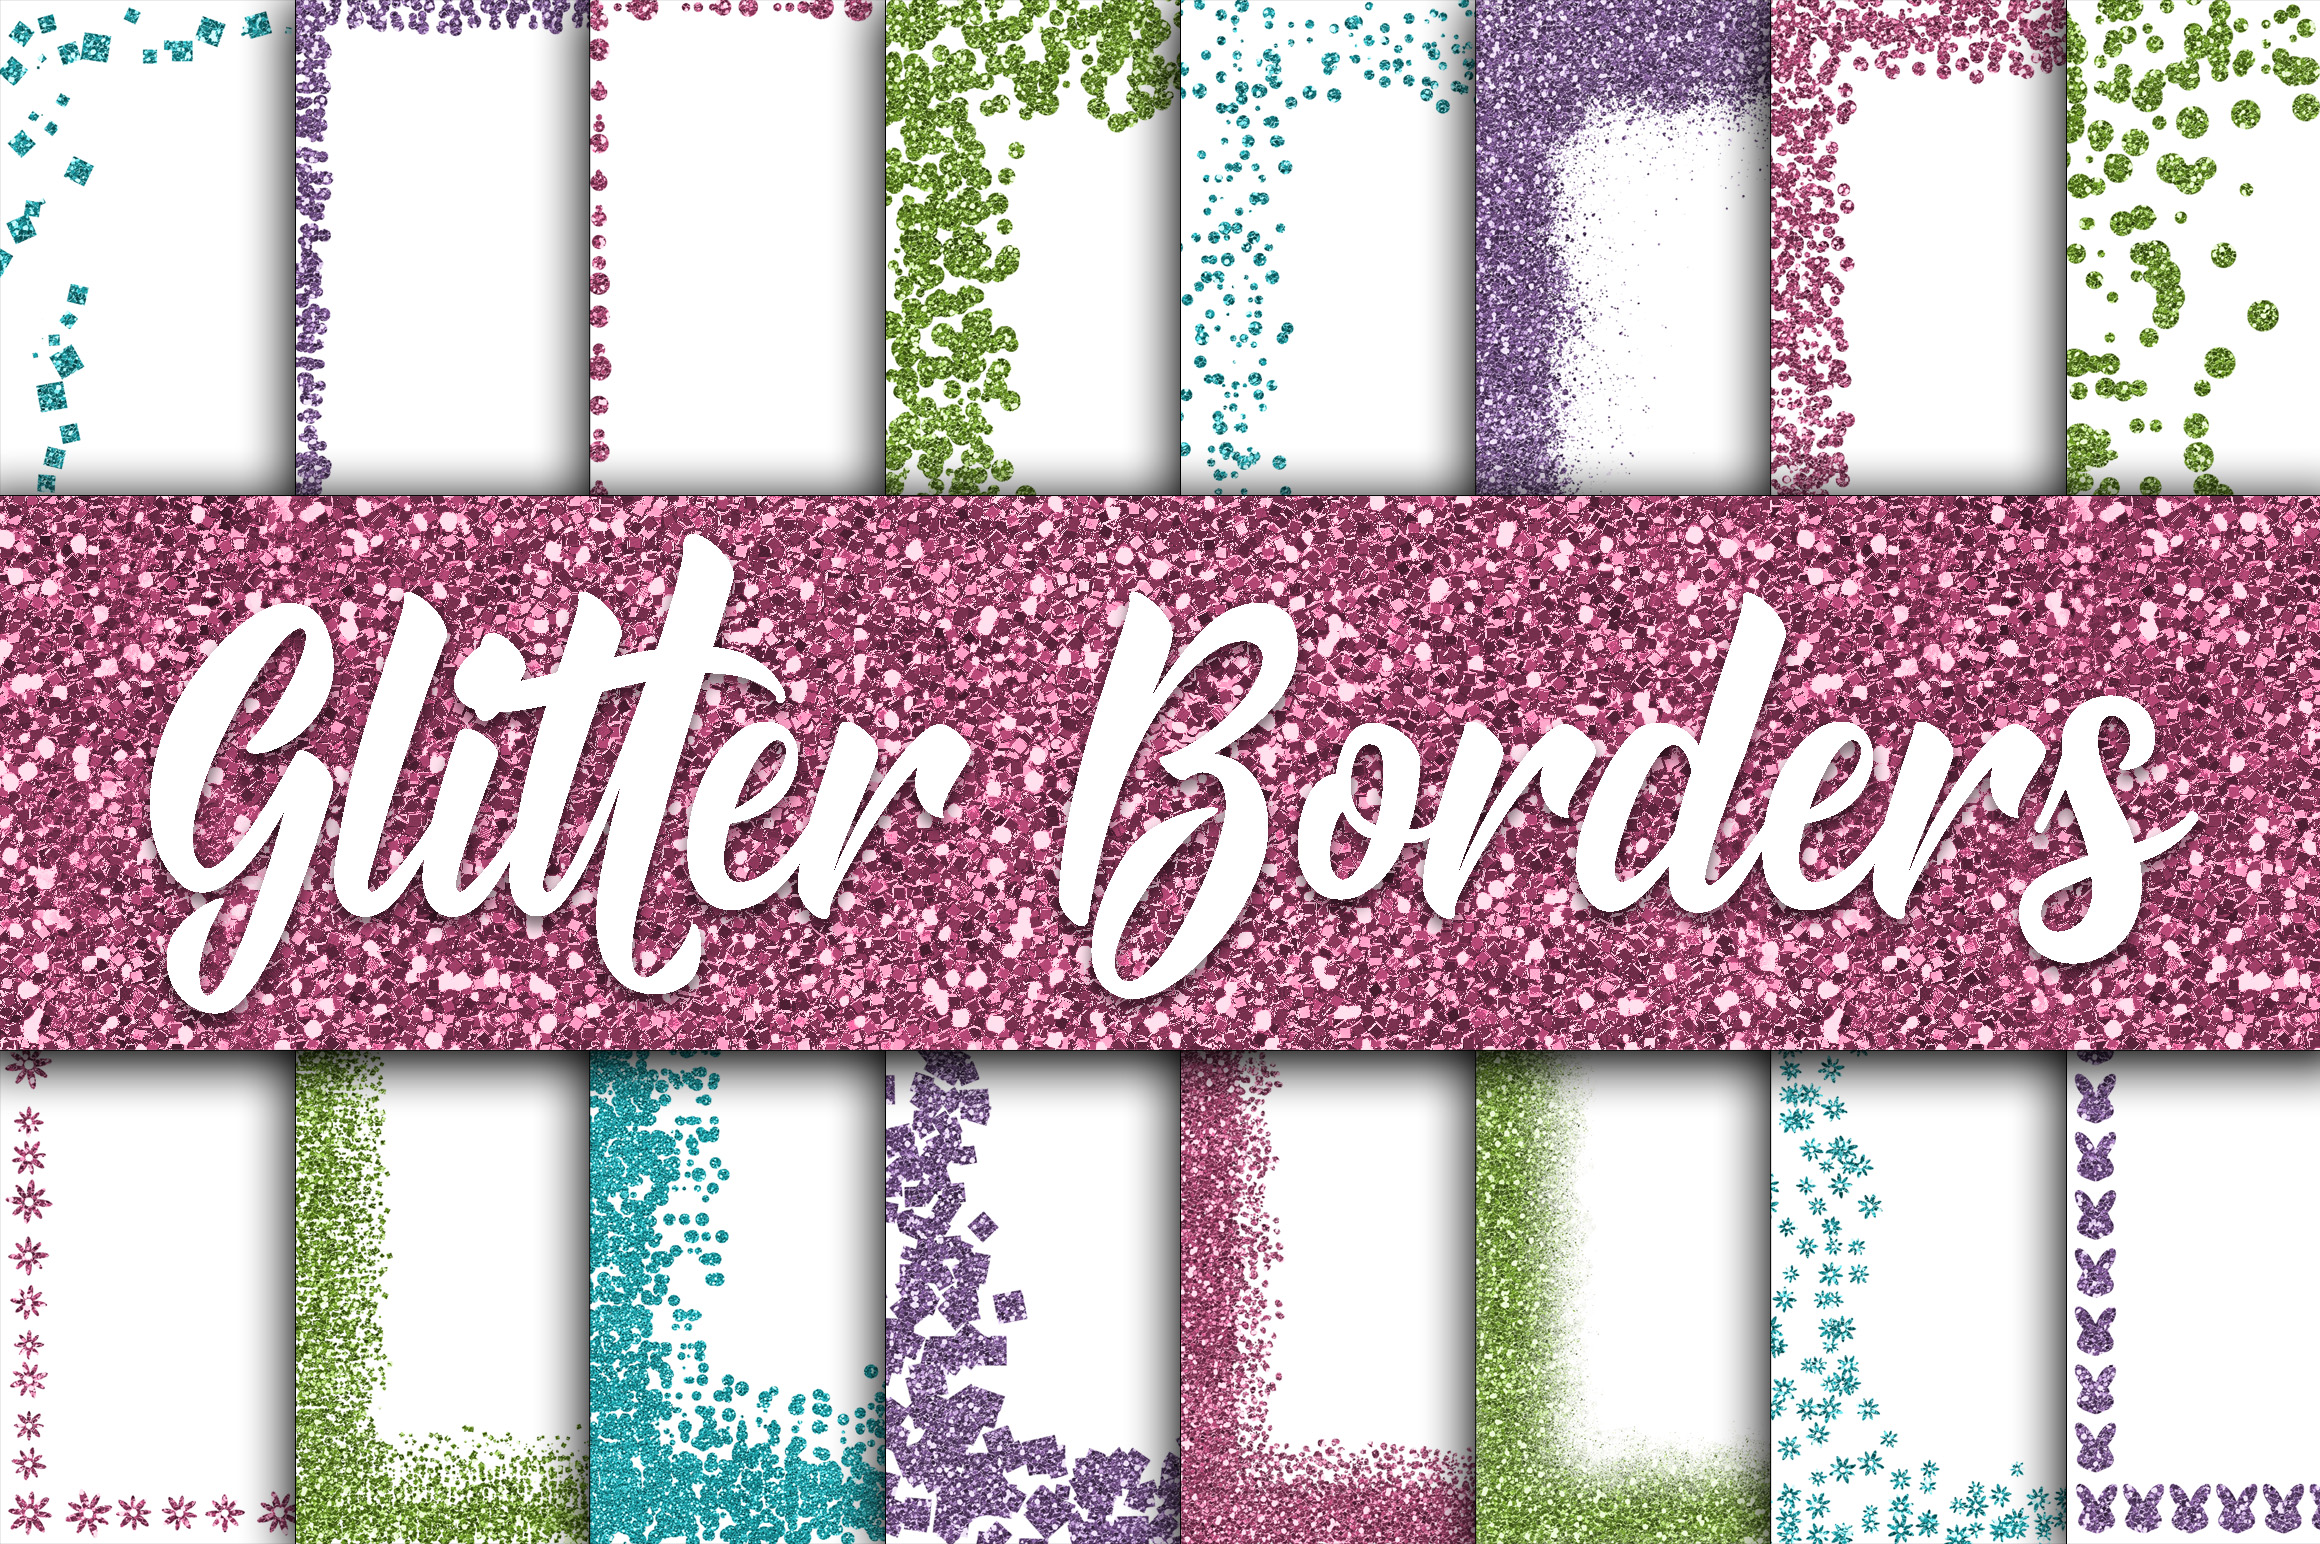 Easter Glitter Borders Digital Paper Graphic Backgrounds By oldmarketdesigns